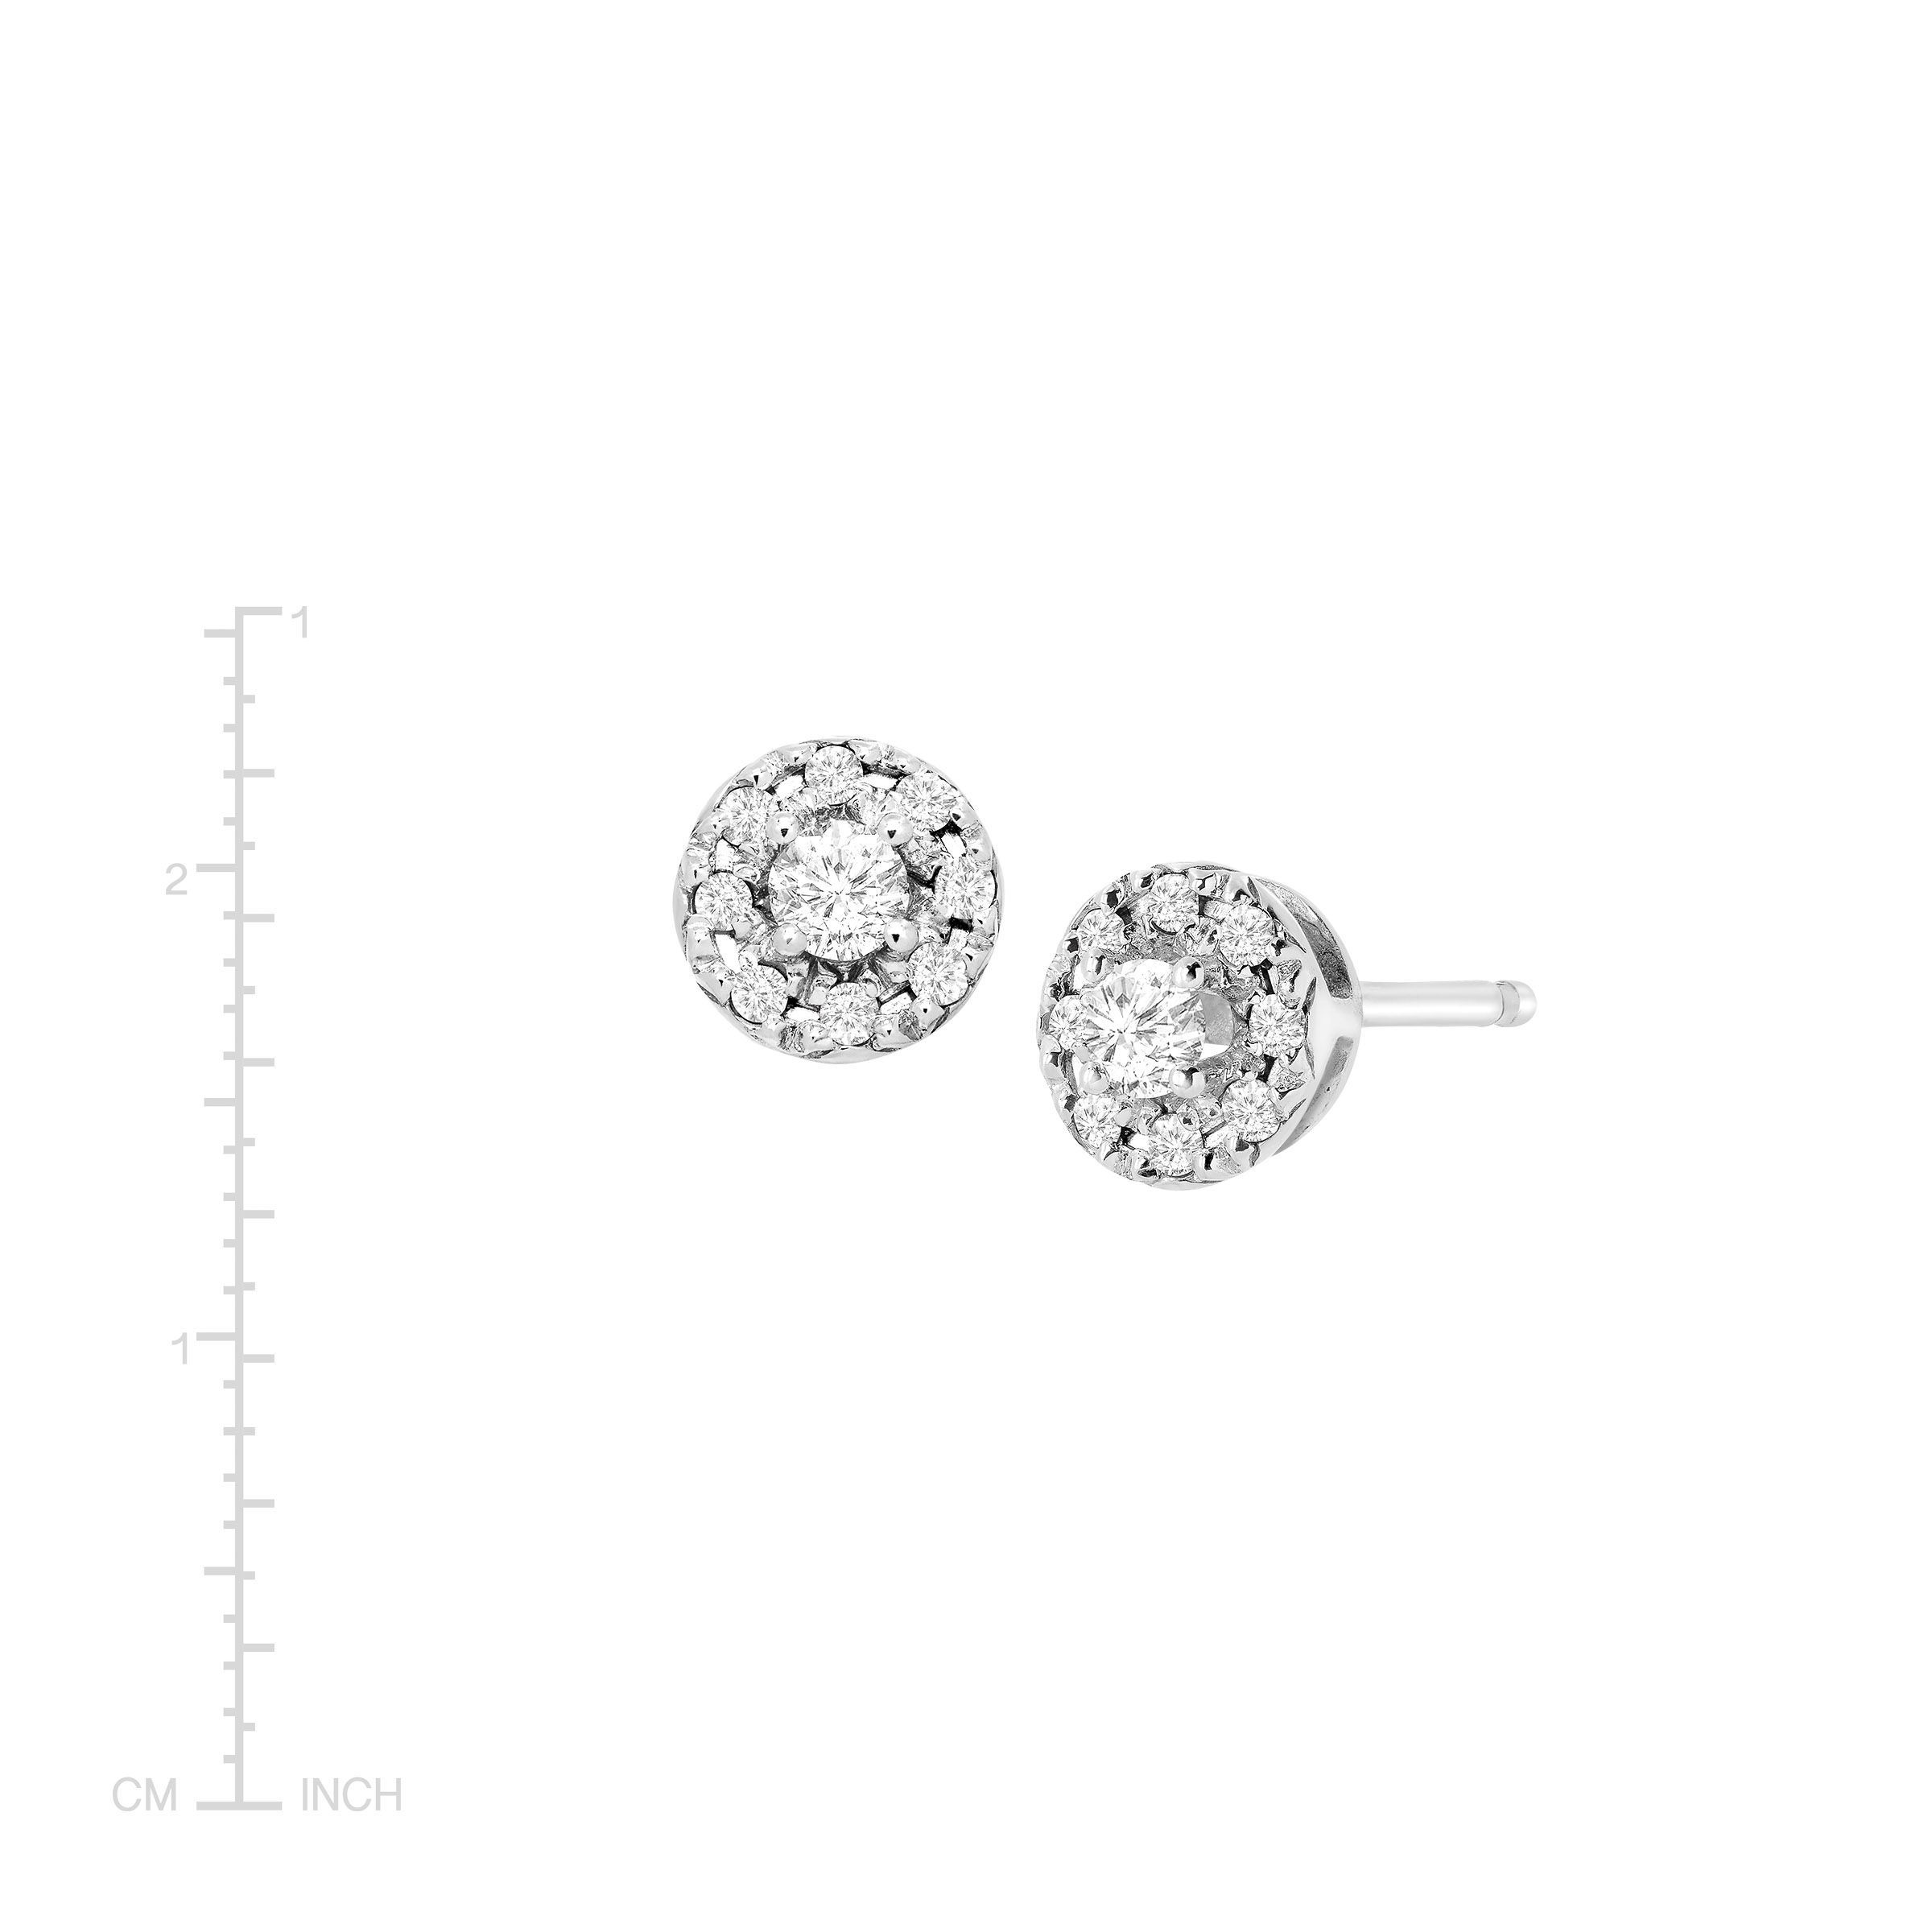 1 4 Ct Diamond Round Halo Stud Earrings In Sterling Silver